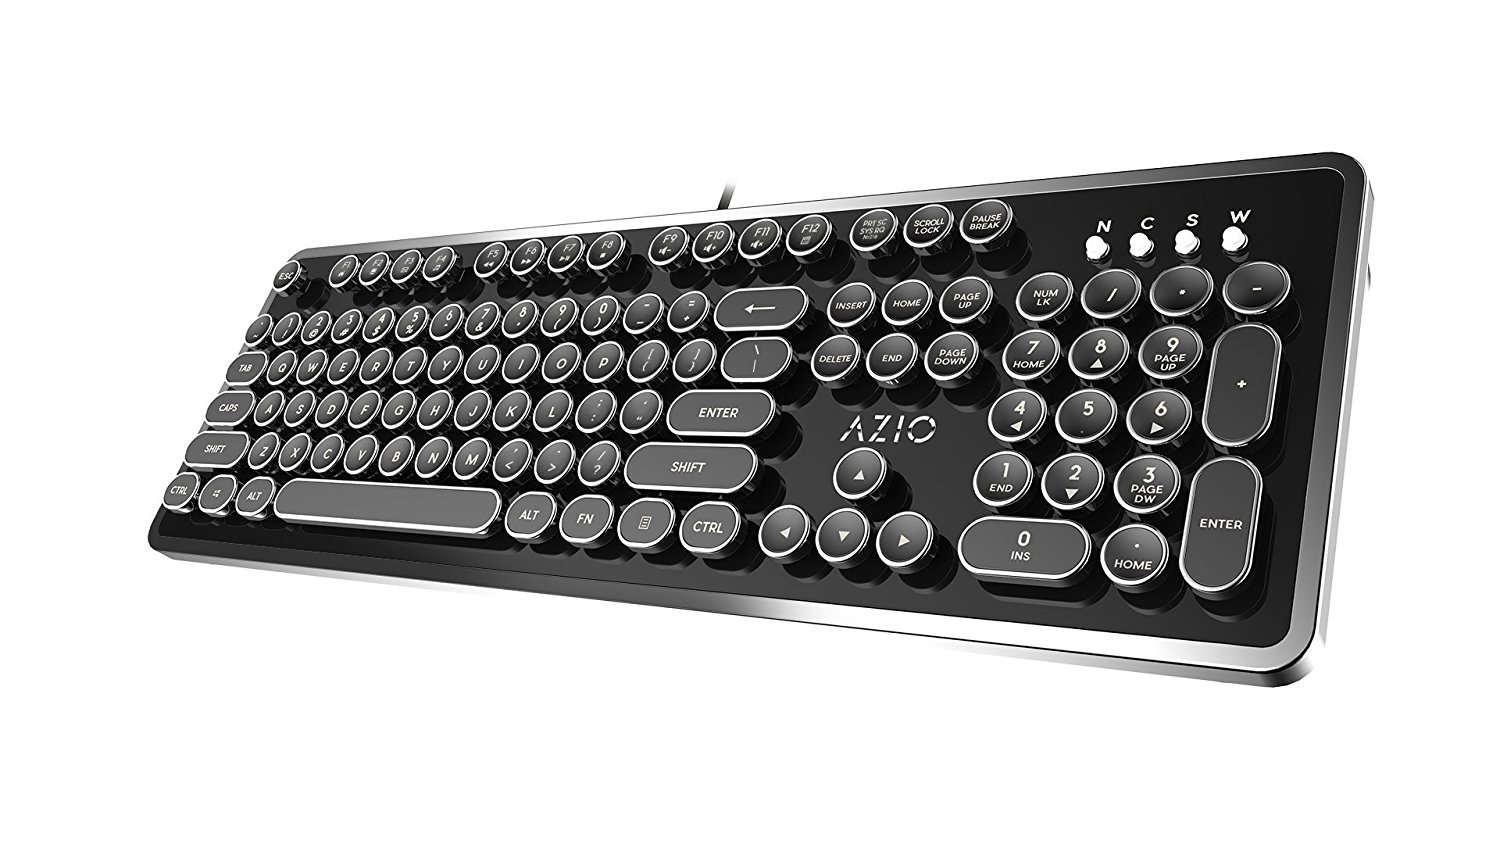 a9f20d36ae8 If you are someone who is torn between buying a wireless or wired keyboard,  this one has you covered. You can use the USB port to connect to your PC or  just ...